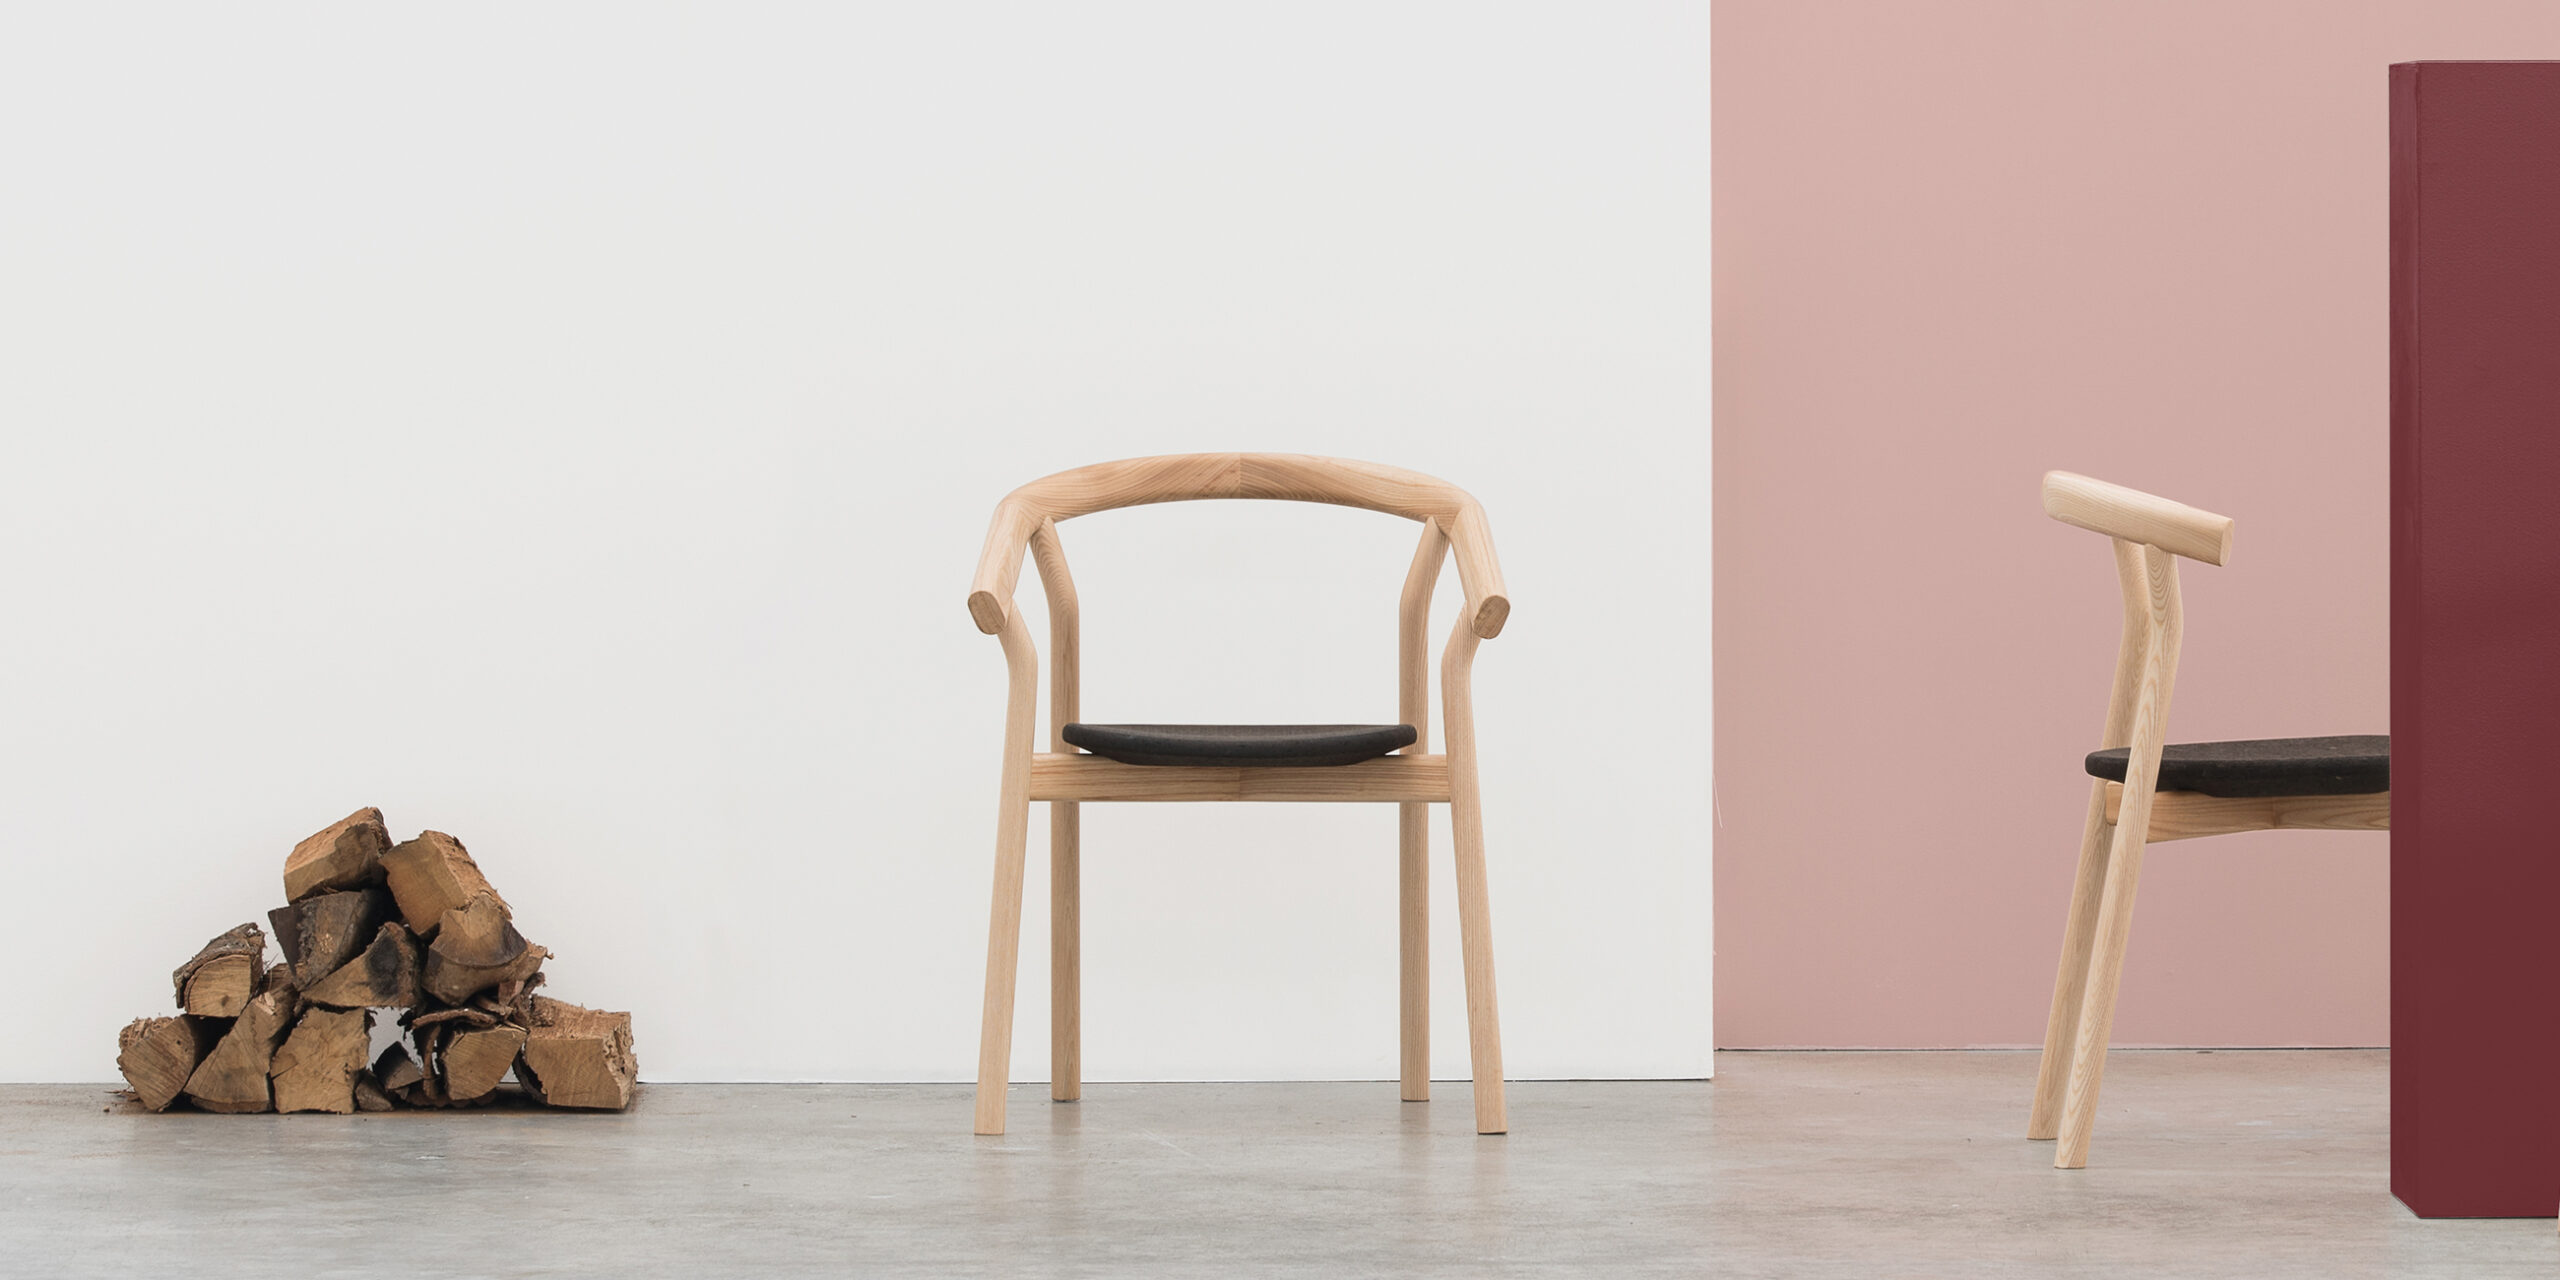 Dora-chair-armchair-wood-dam